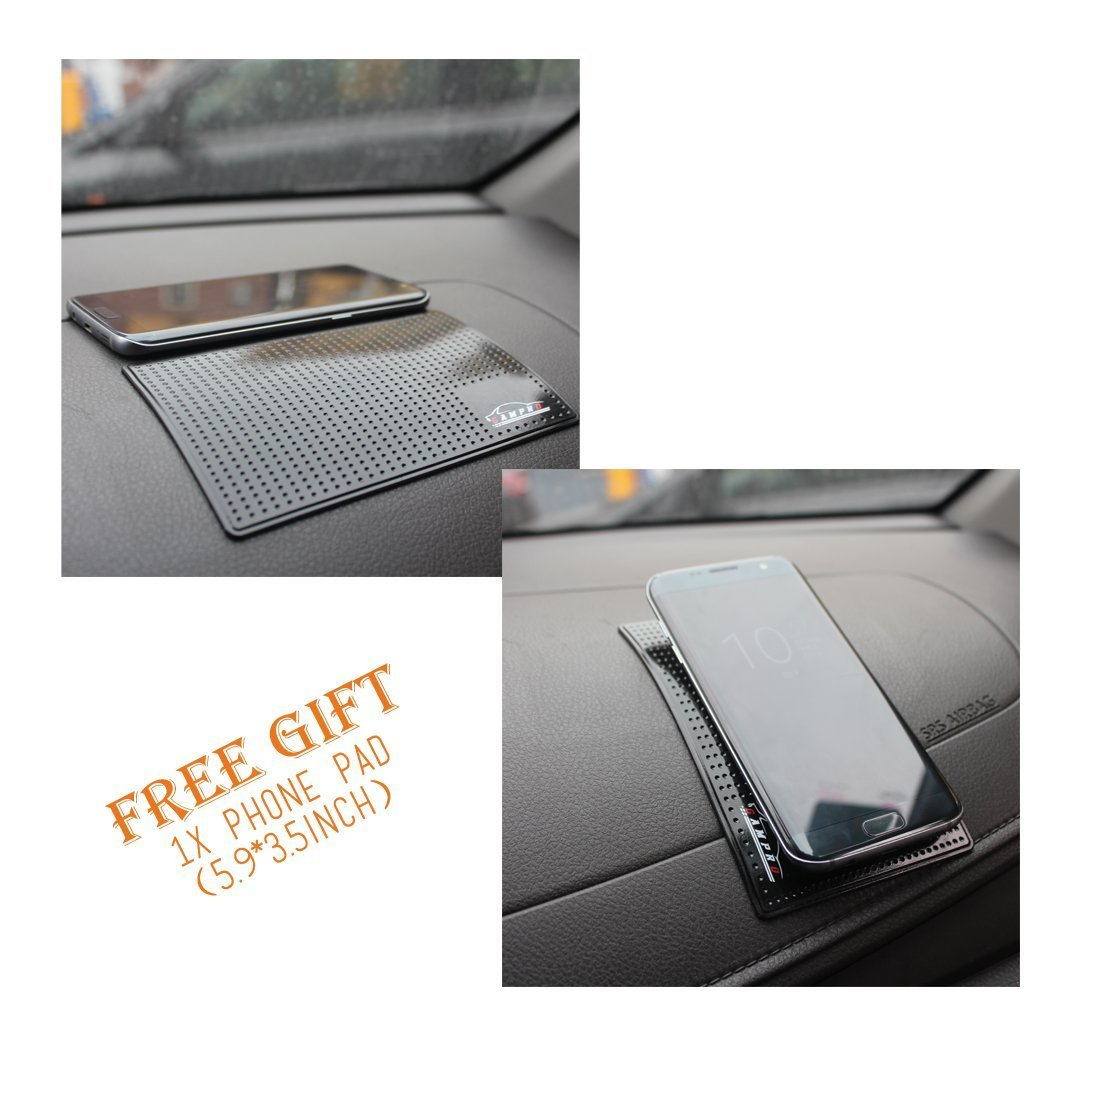 GAMPRO 3-Pack Car Window Sun Shade 51cm x 31cm Keeps Harmful UV Rays Away From Your Family 2-Layer Pop-Up Car Window Shade with Static Cling Technology for Your Kids and Pets